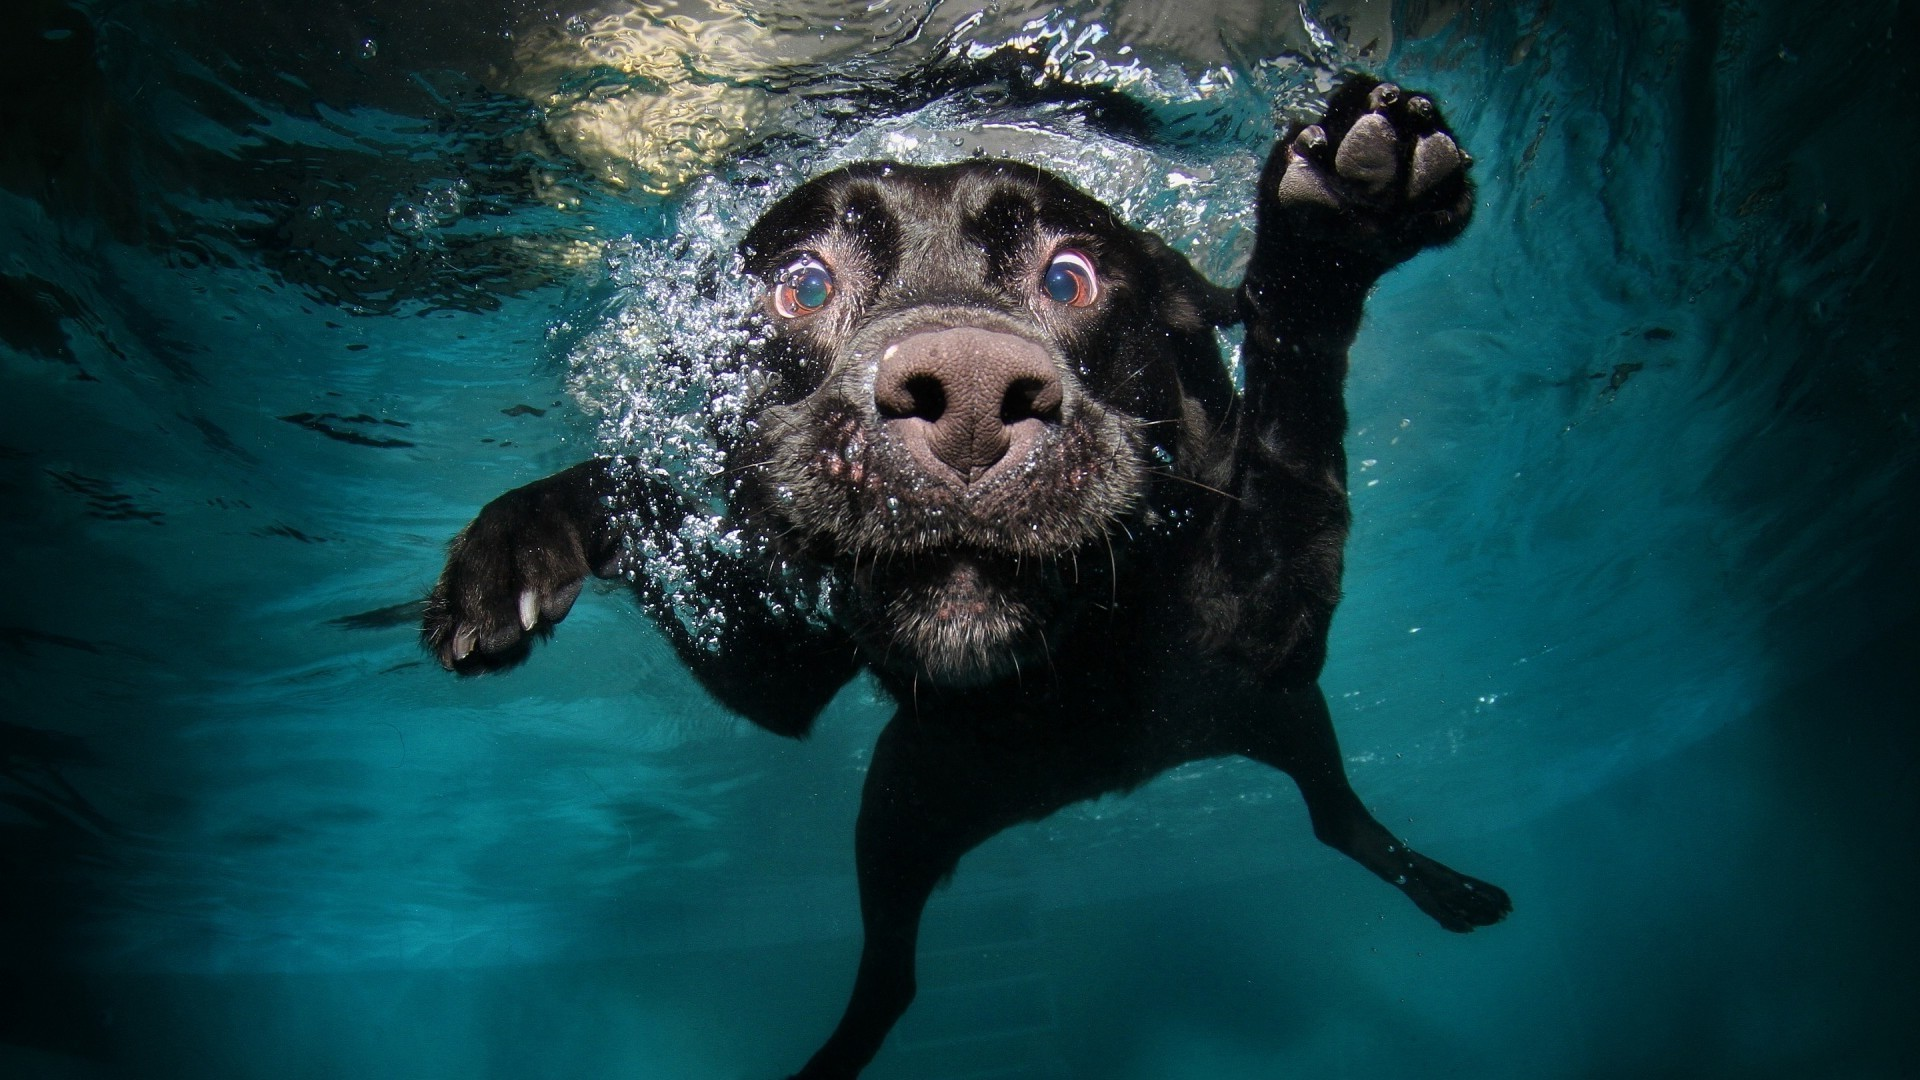 dogs underwater swimming water mammal one